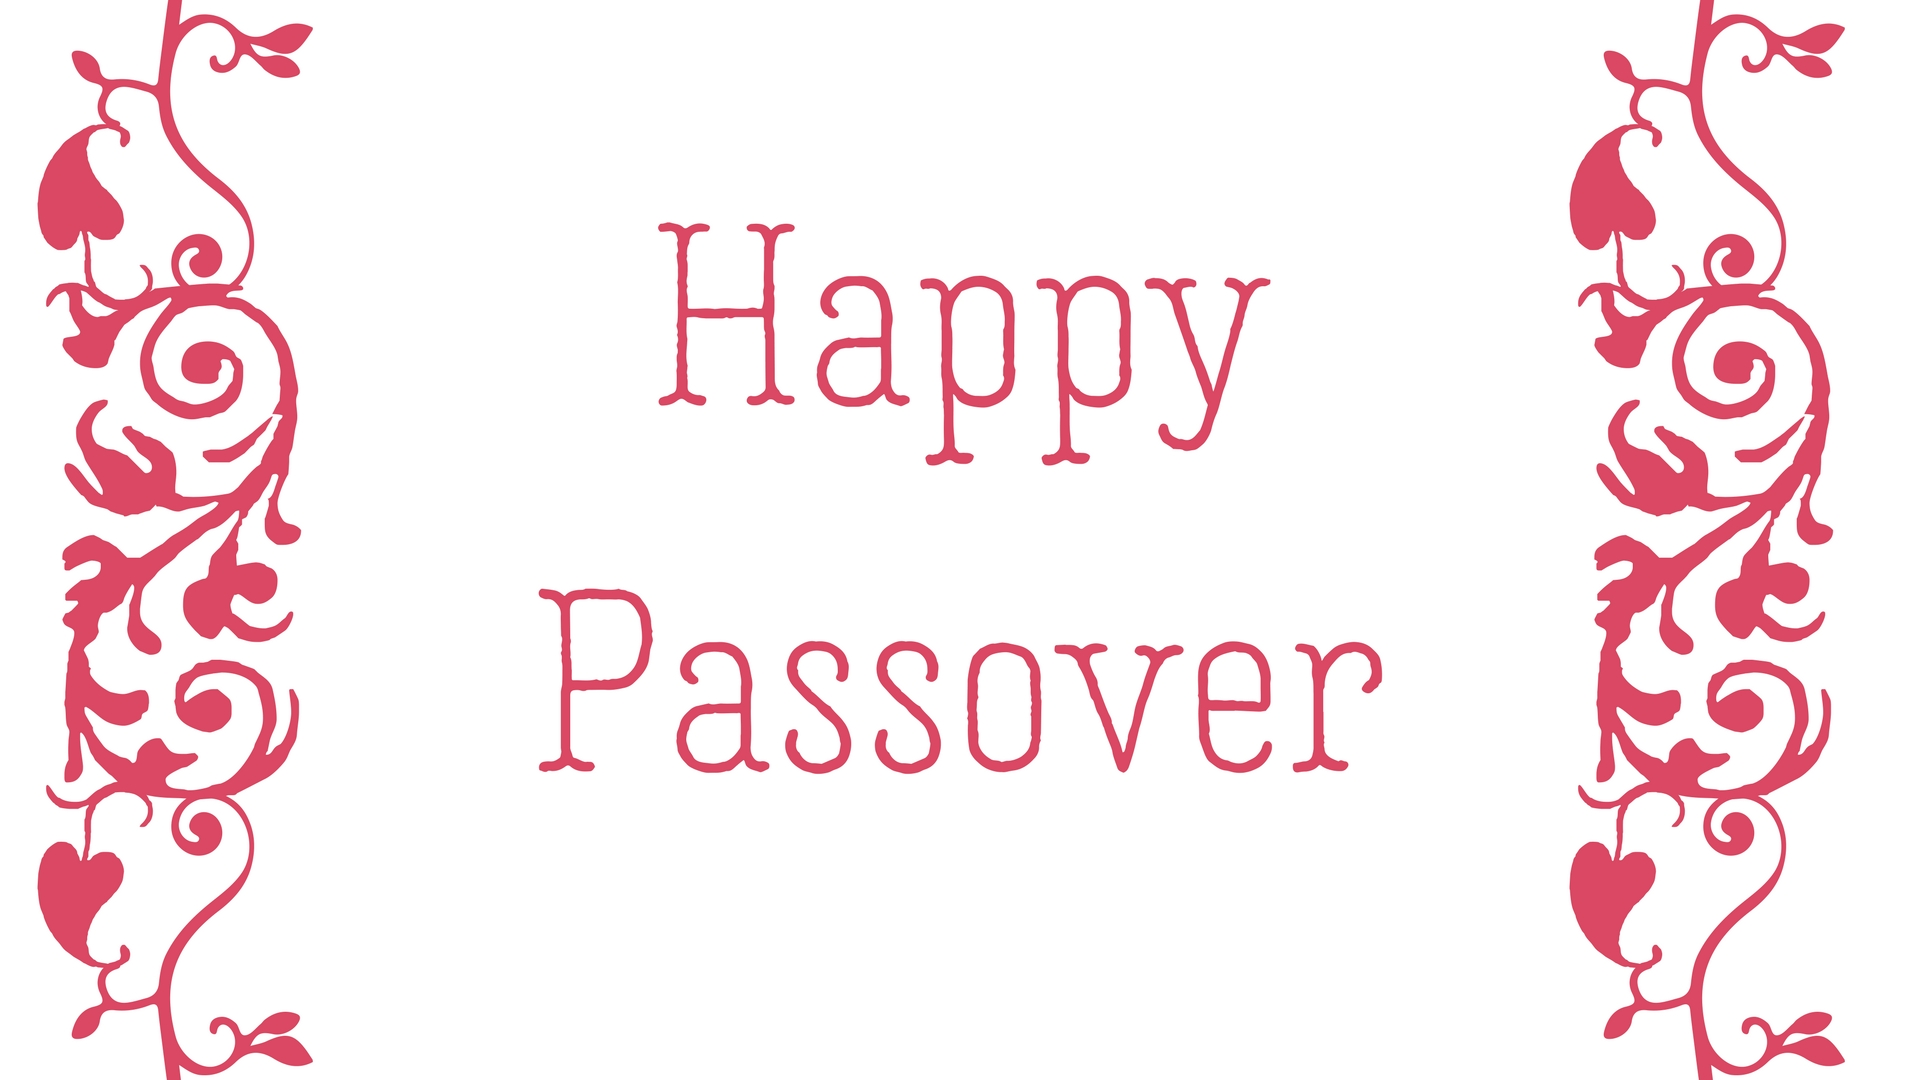 Happy Passover Rectangle Frame Greeting Card Postcard 13